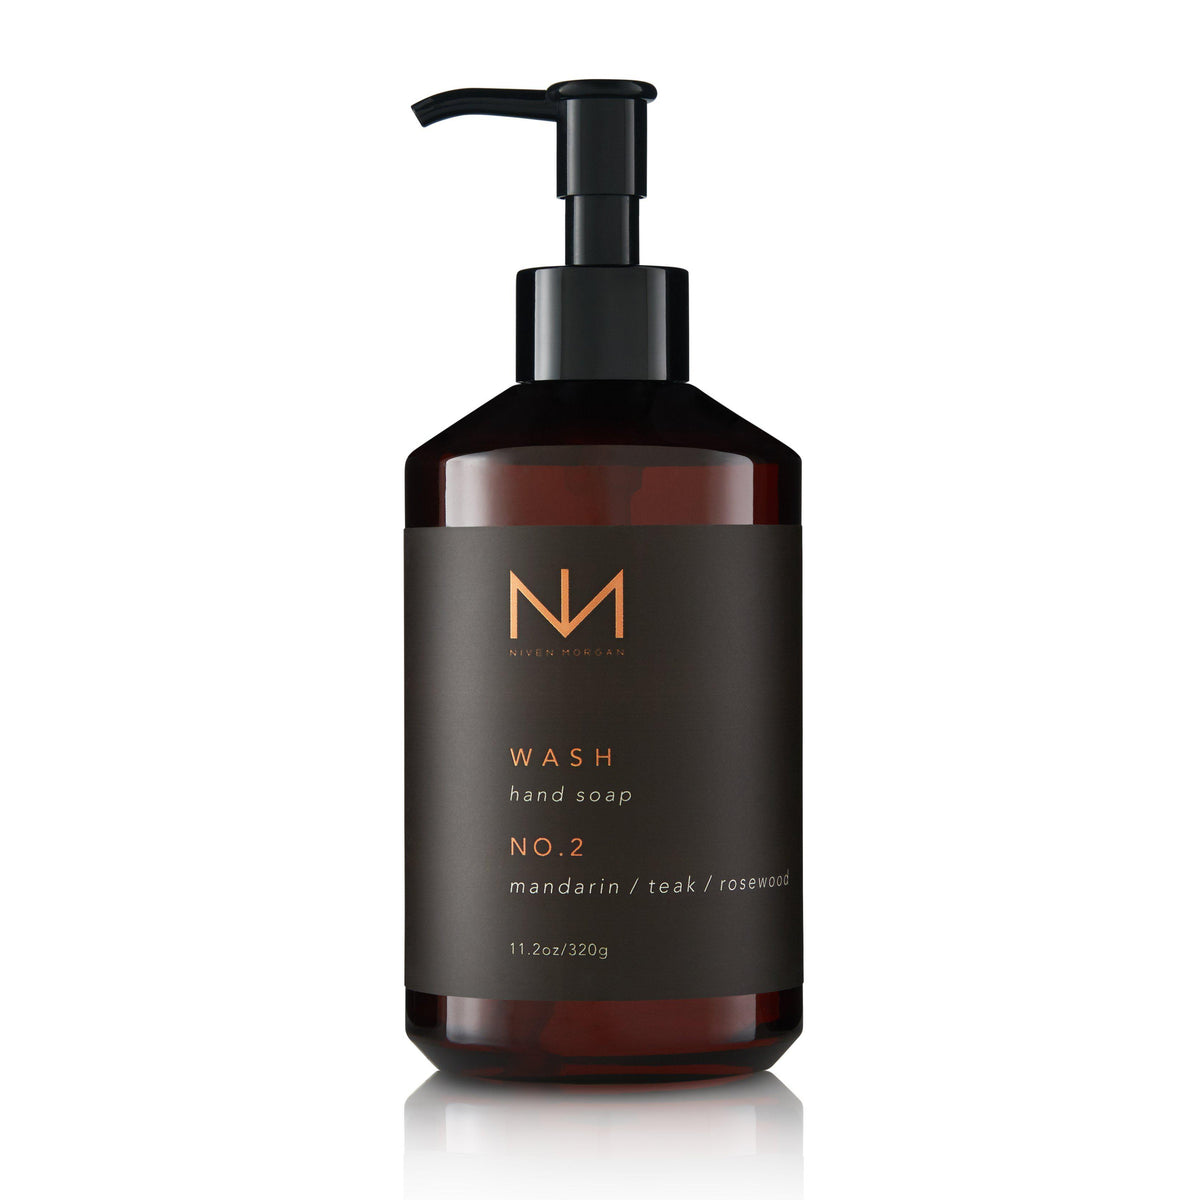 Niven Morgan Liquid Hand Soap No. 2-Niven Morgan-Oak Manor Fragrances